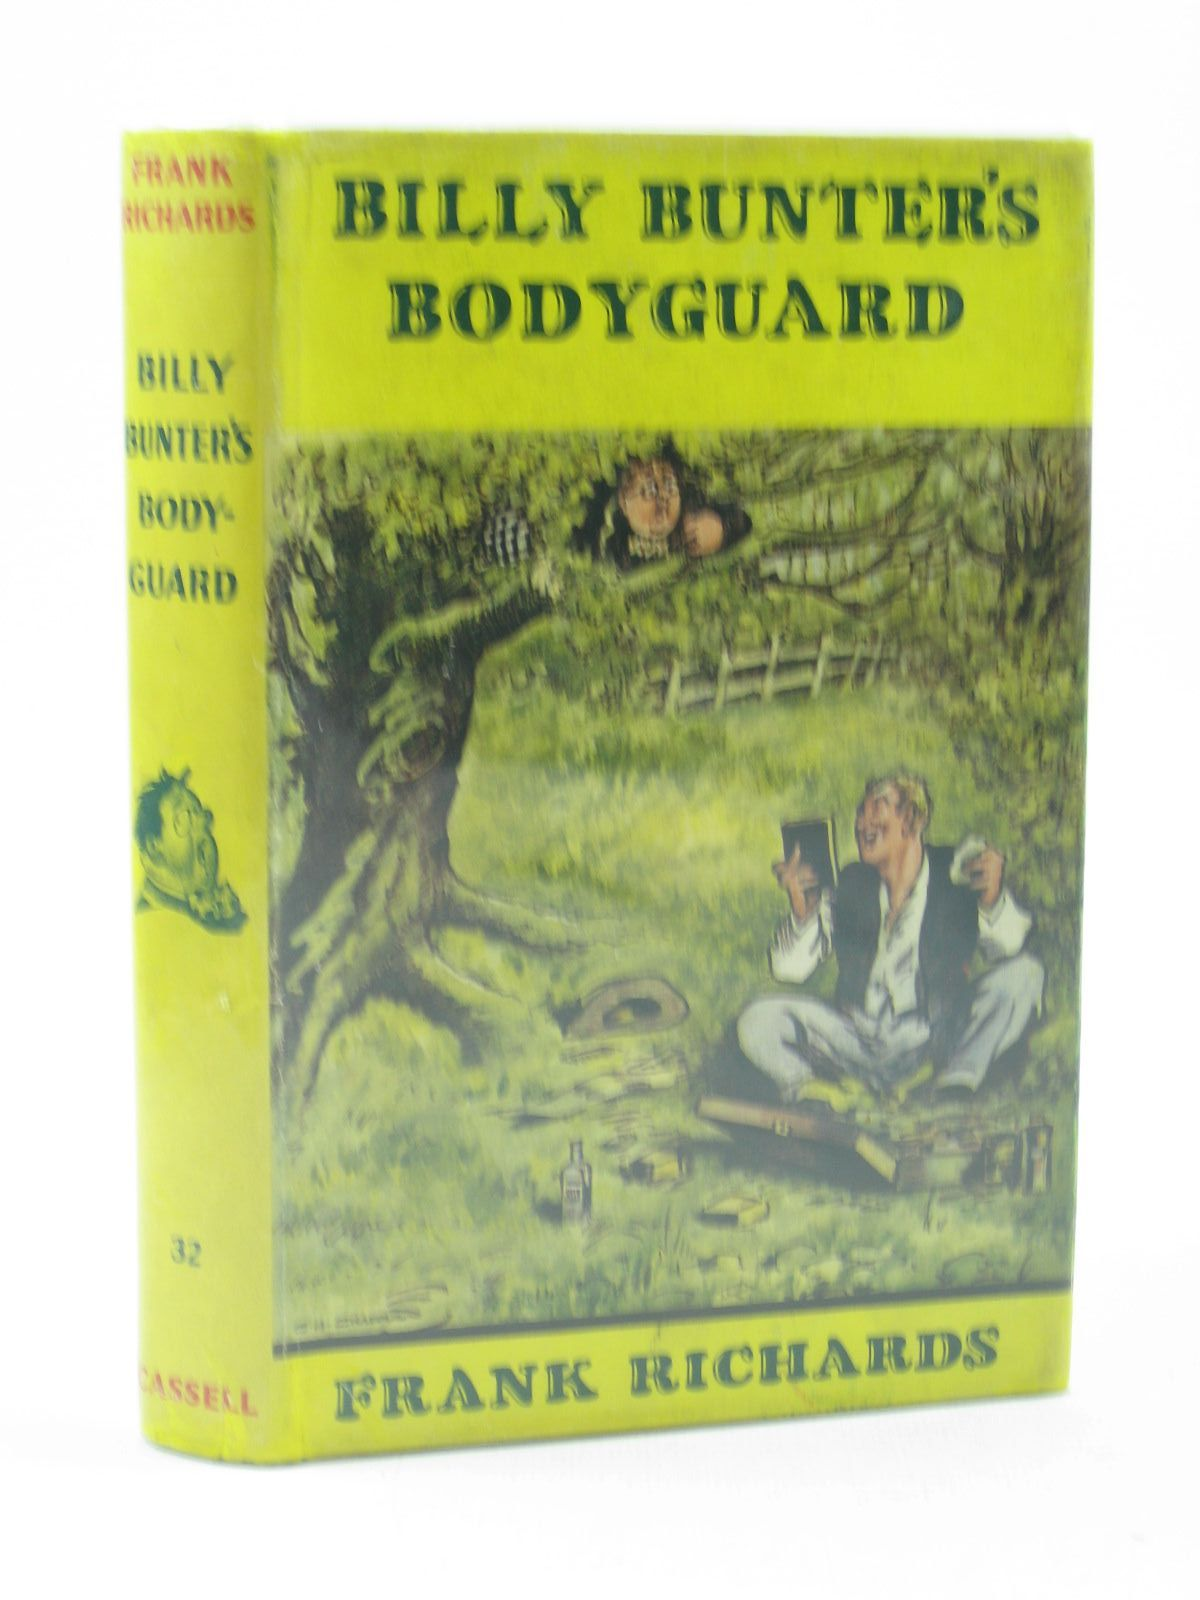 Cover of BILLY BUNTER'S BODYGUARD by Frank Richards